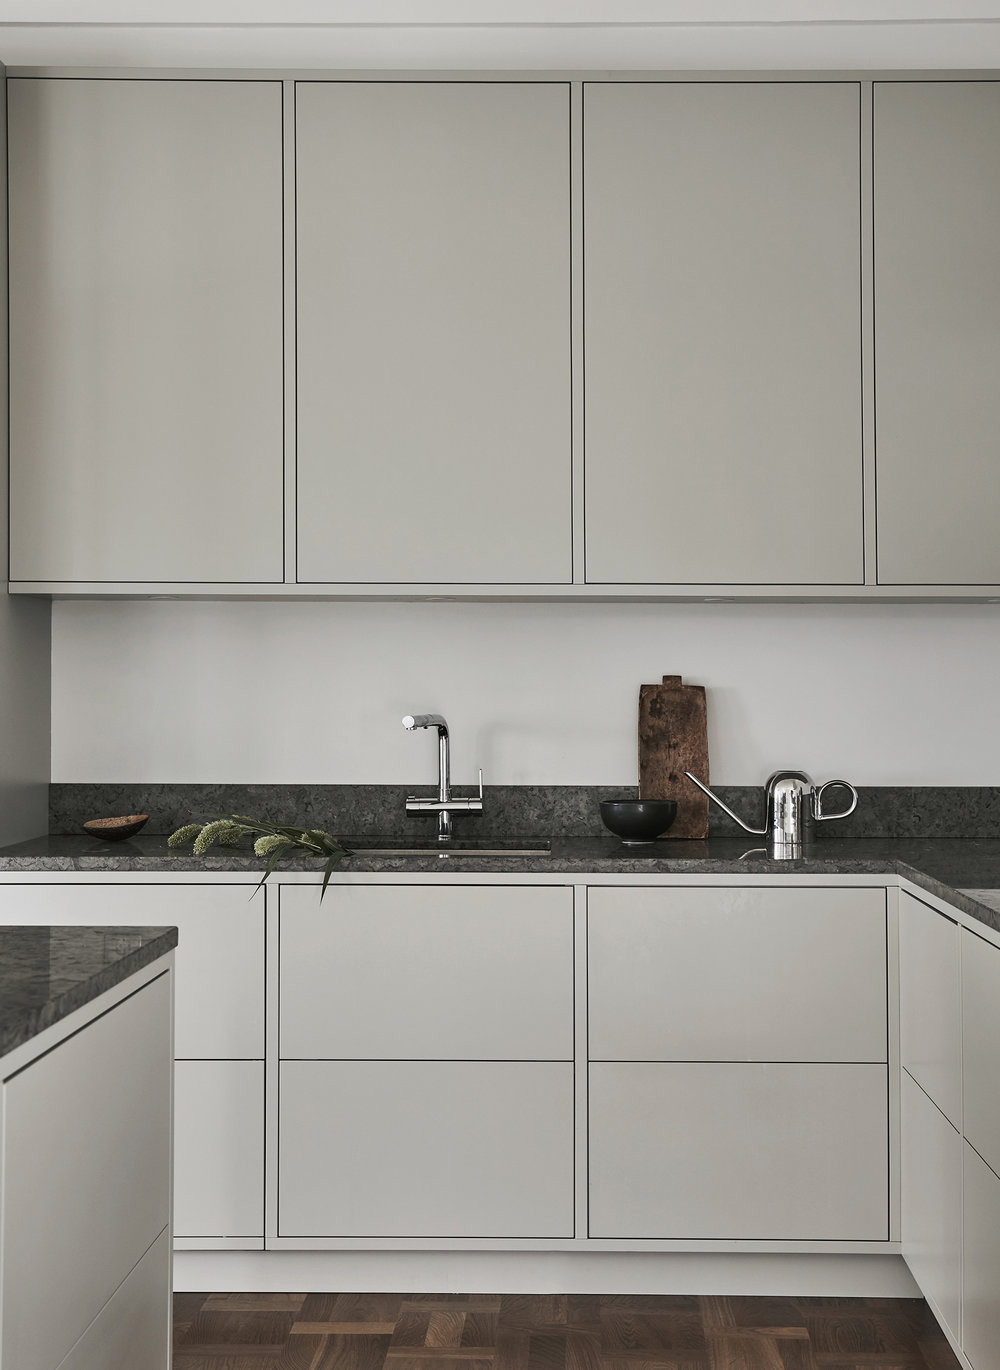 kitchen, interior design, kitchen interior, interior styling, Nordiska Kök, SundlingKicken, Nordic Design